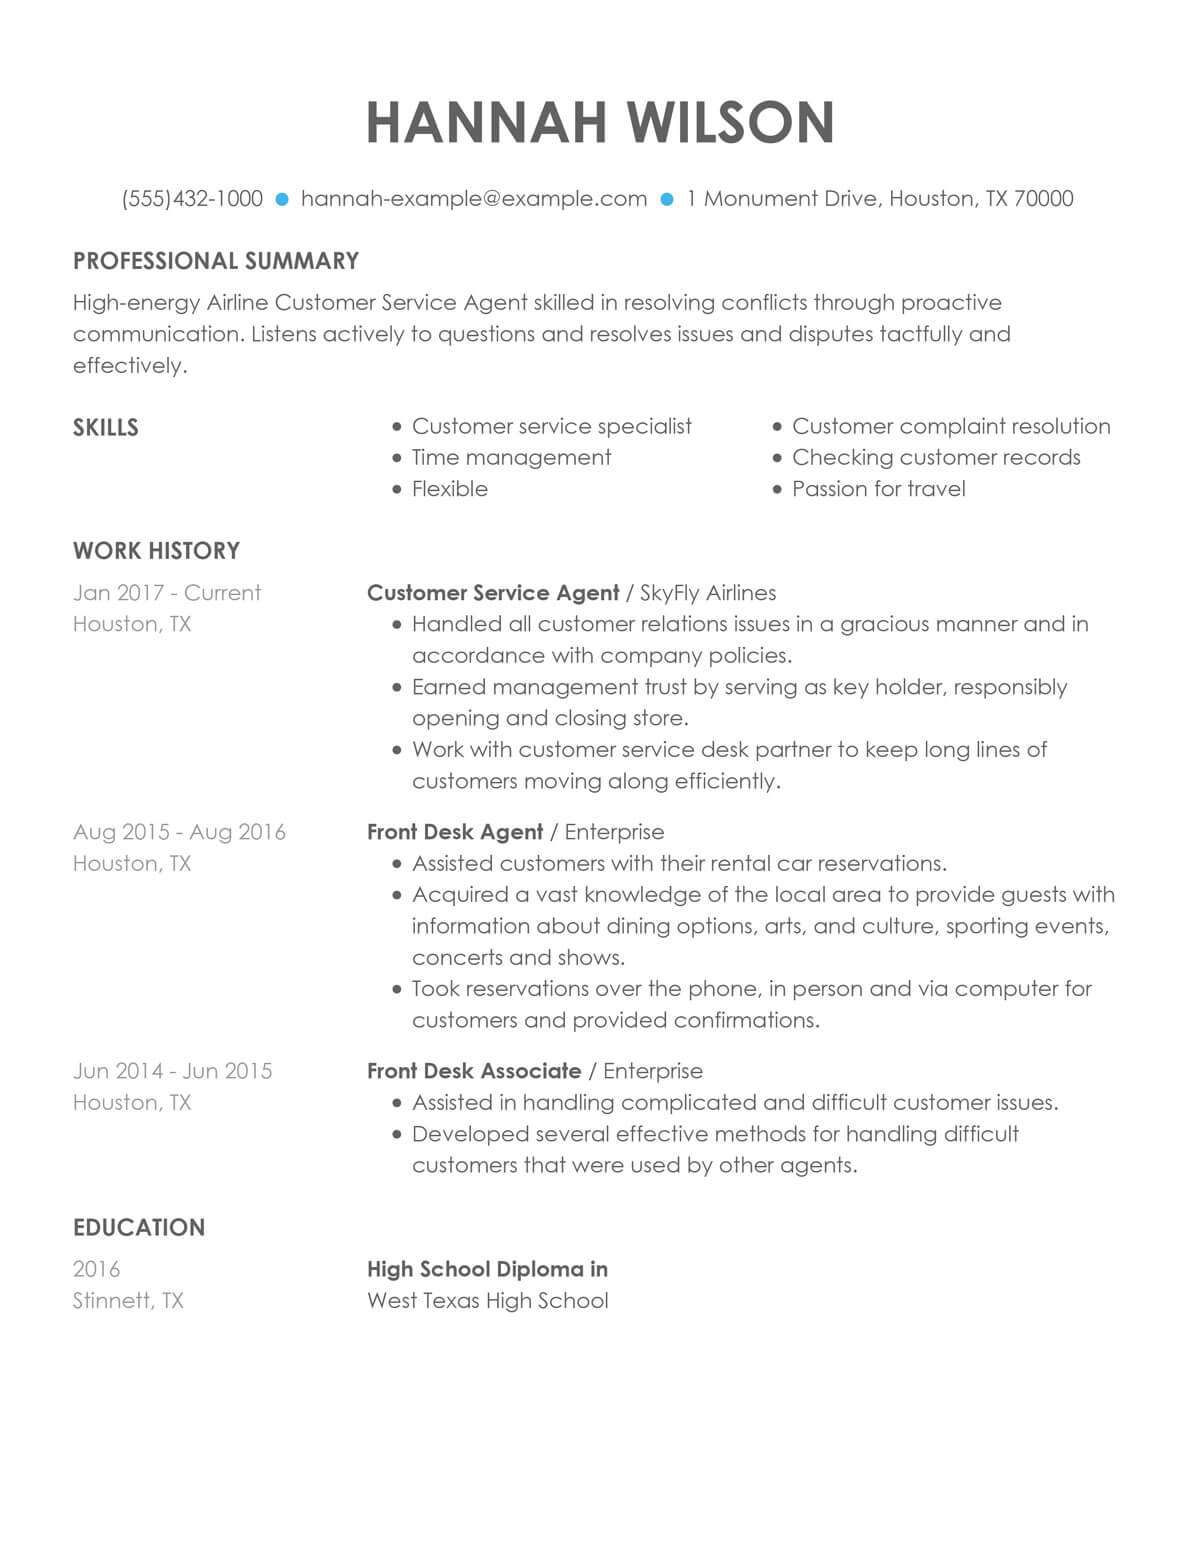 customize our customer representative resume example service sample airline agent Resume Customer Service Resume Sample